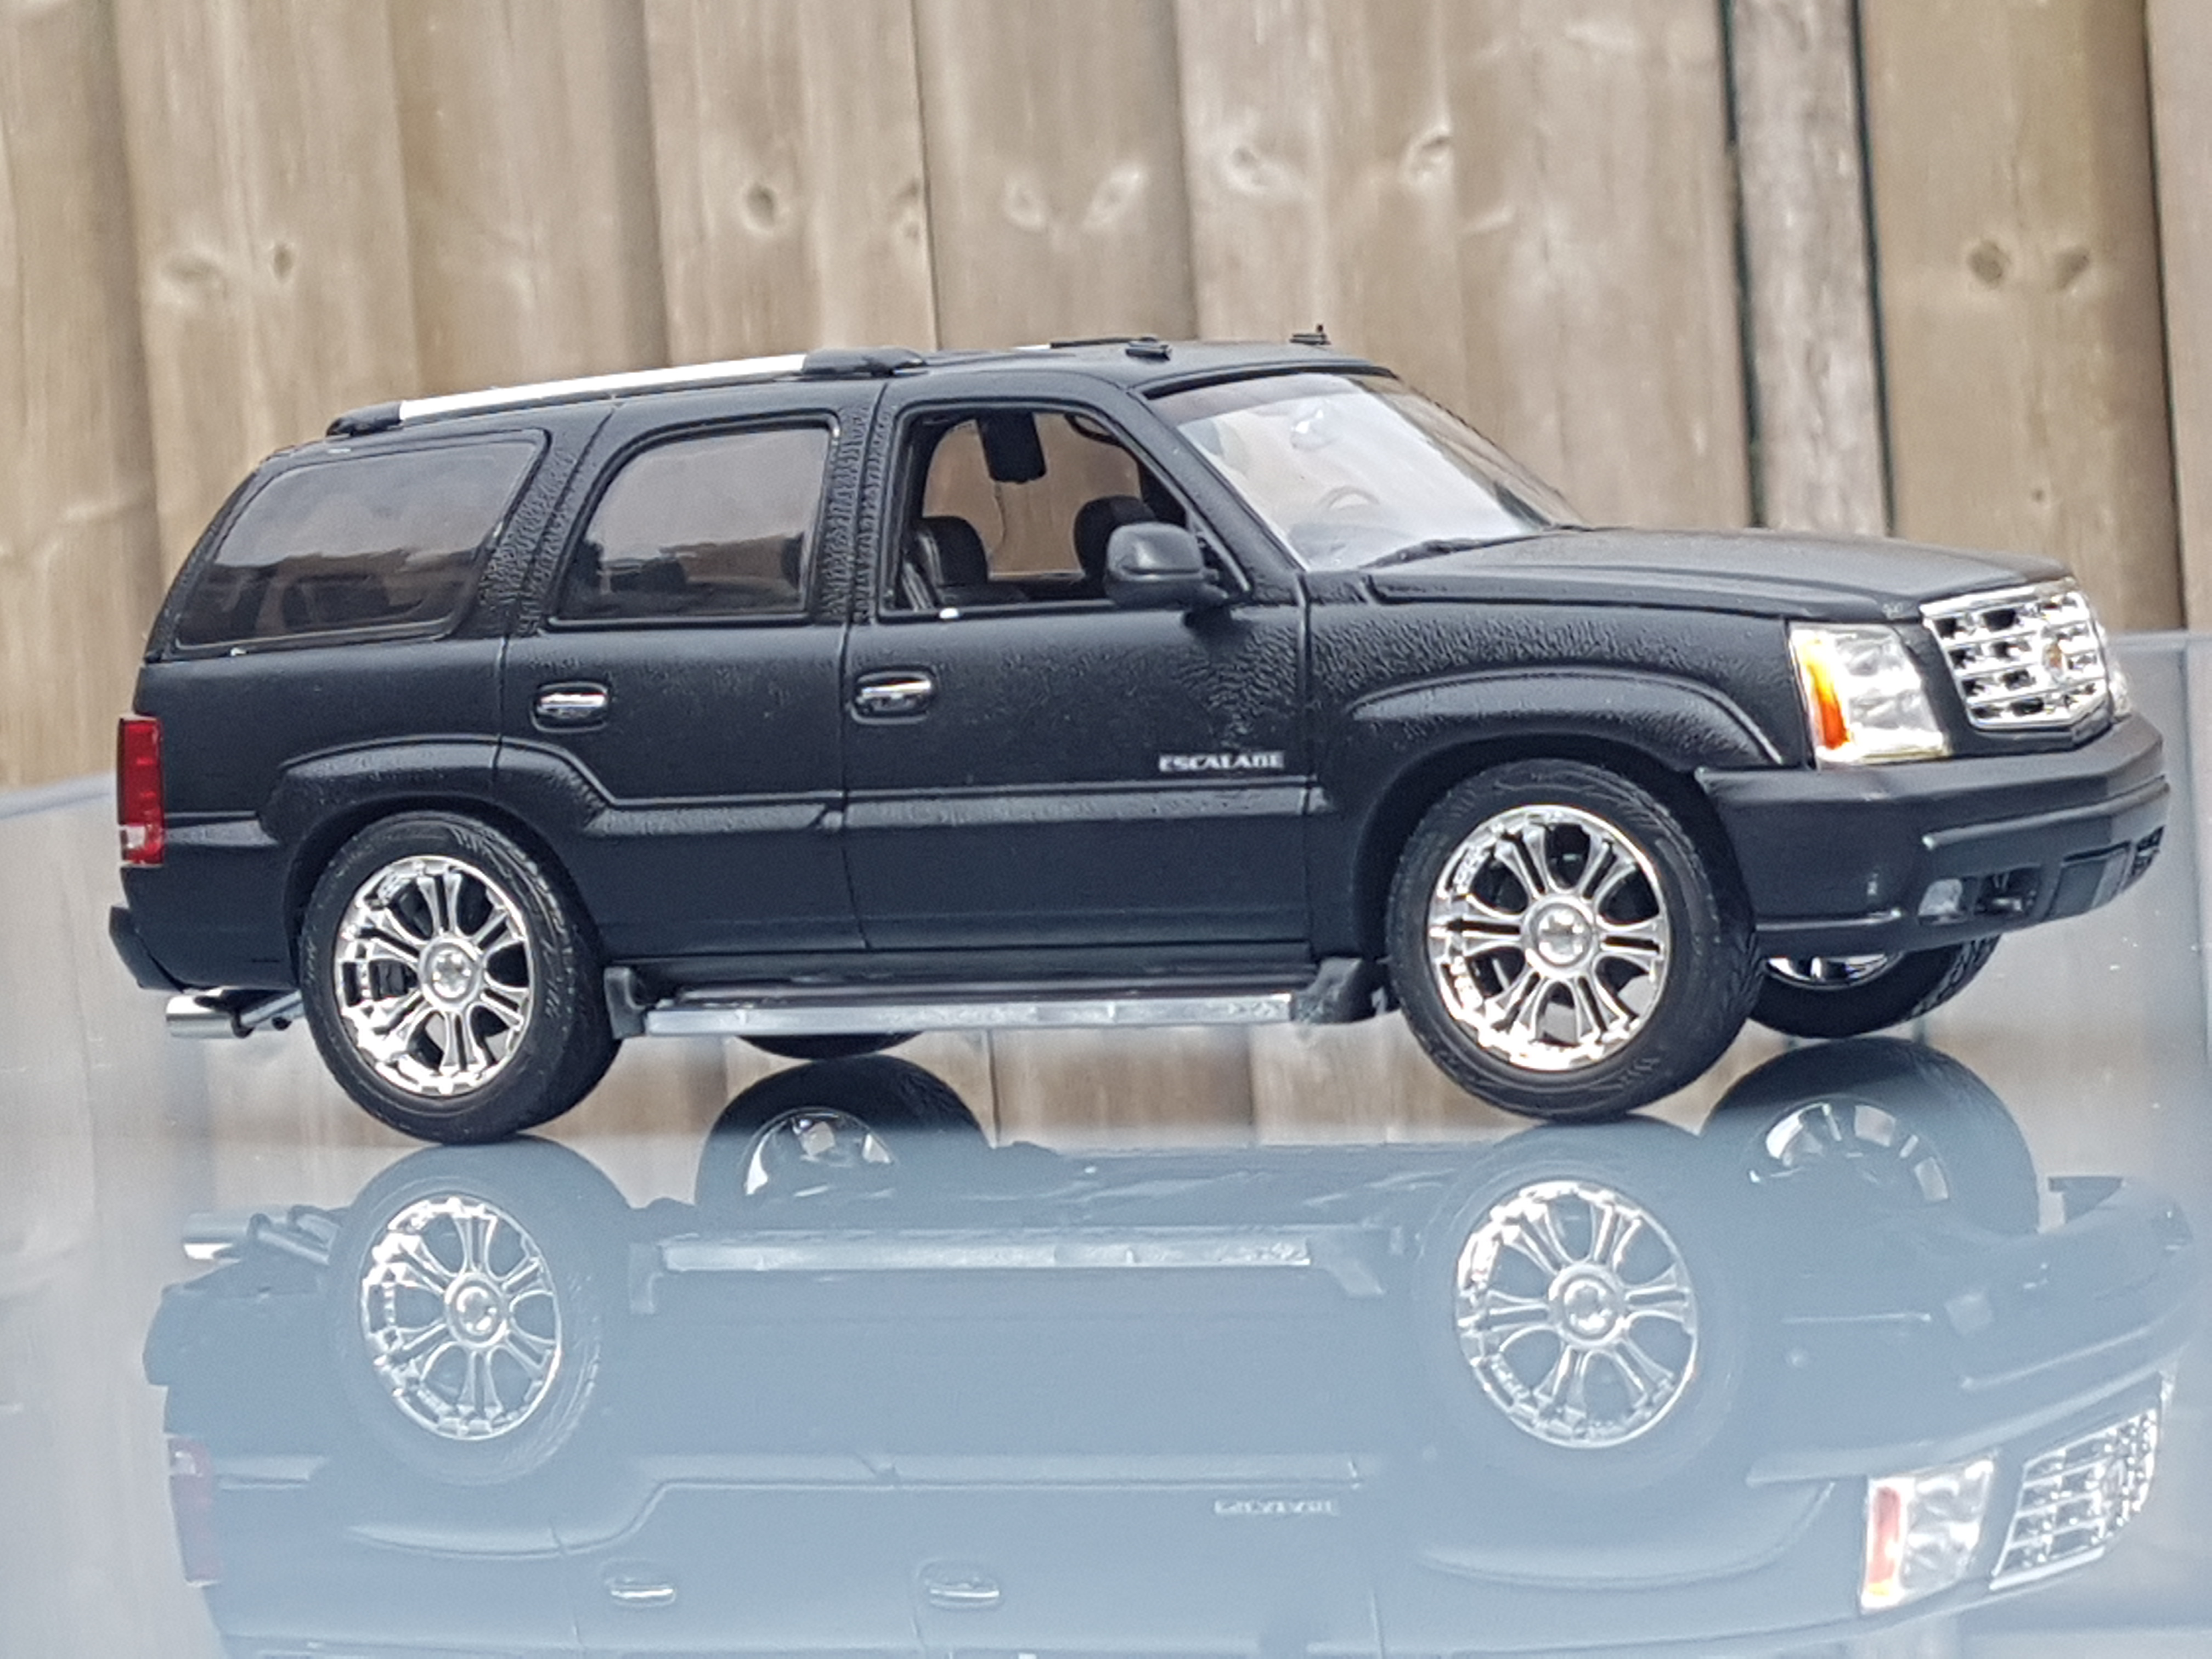 vehicles excellent title escalade condition car for truck family low km cadillac mint sale great esv advert